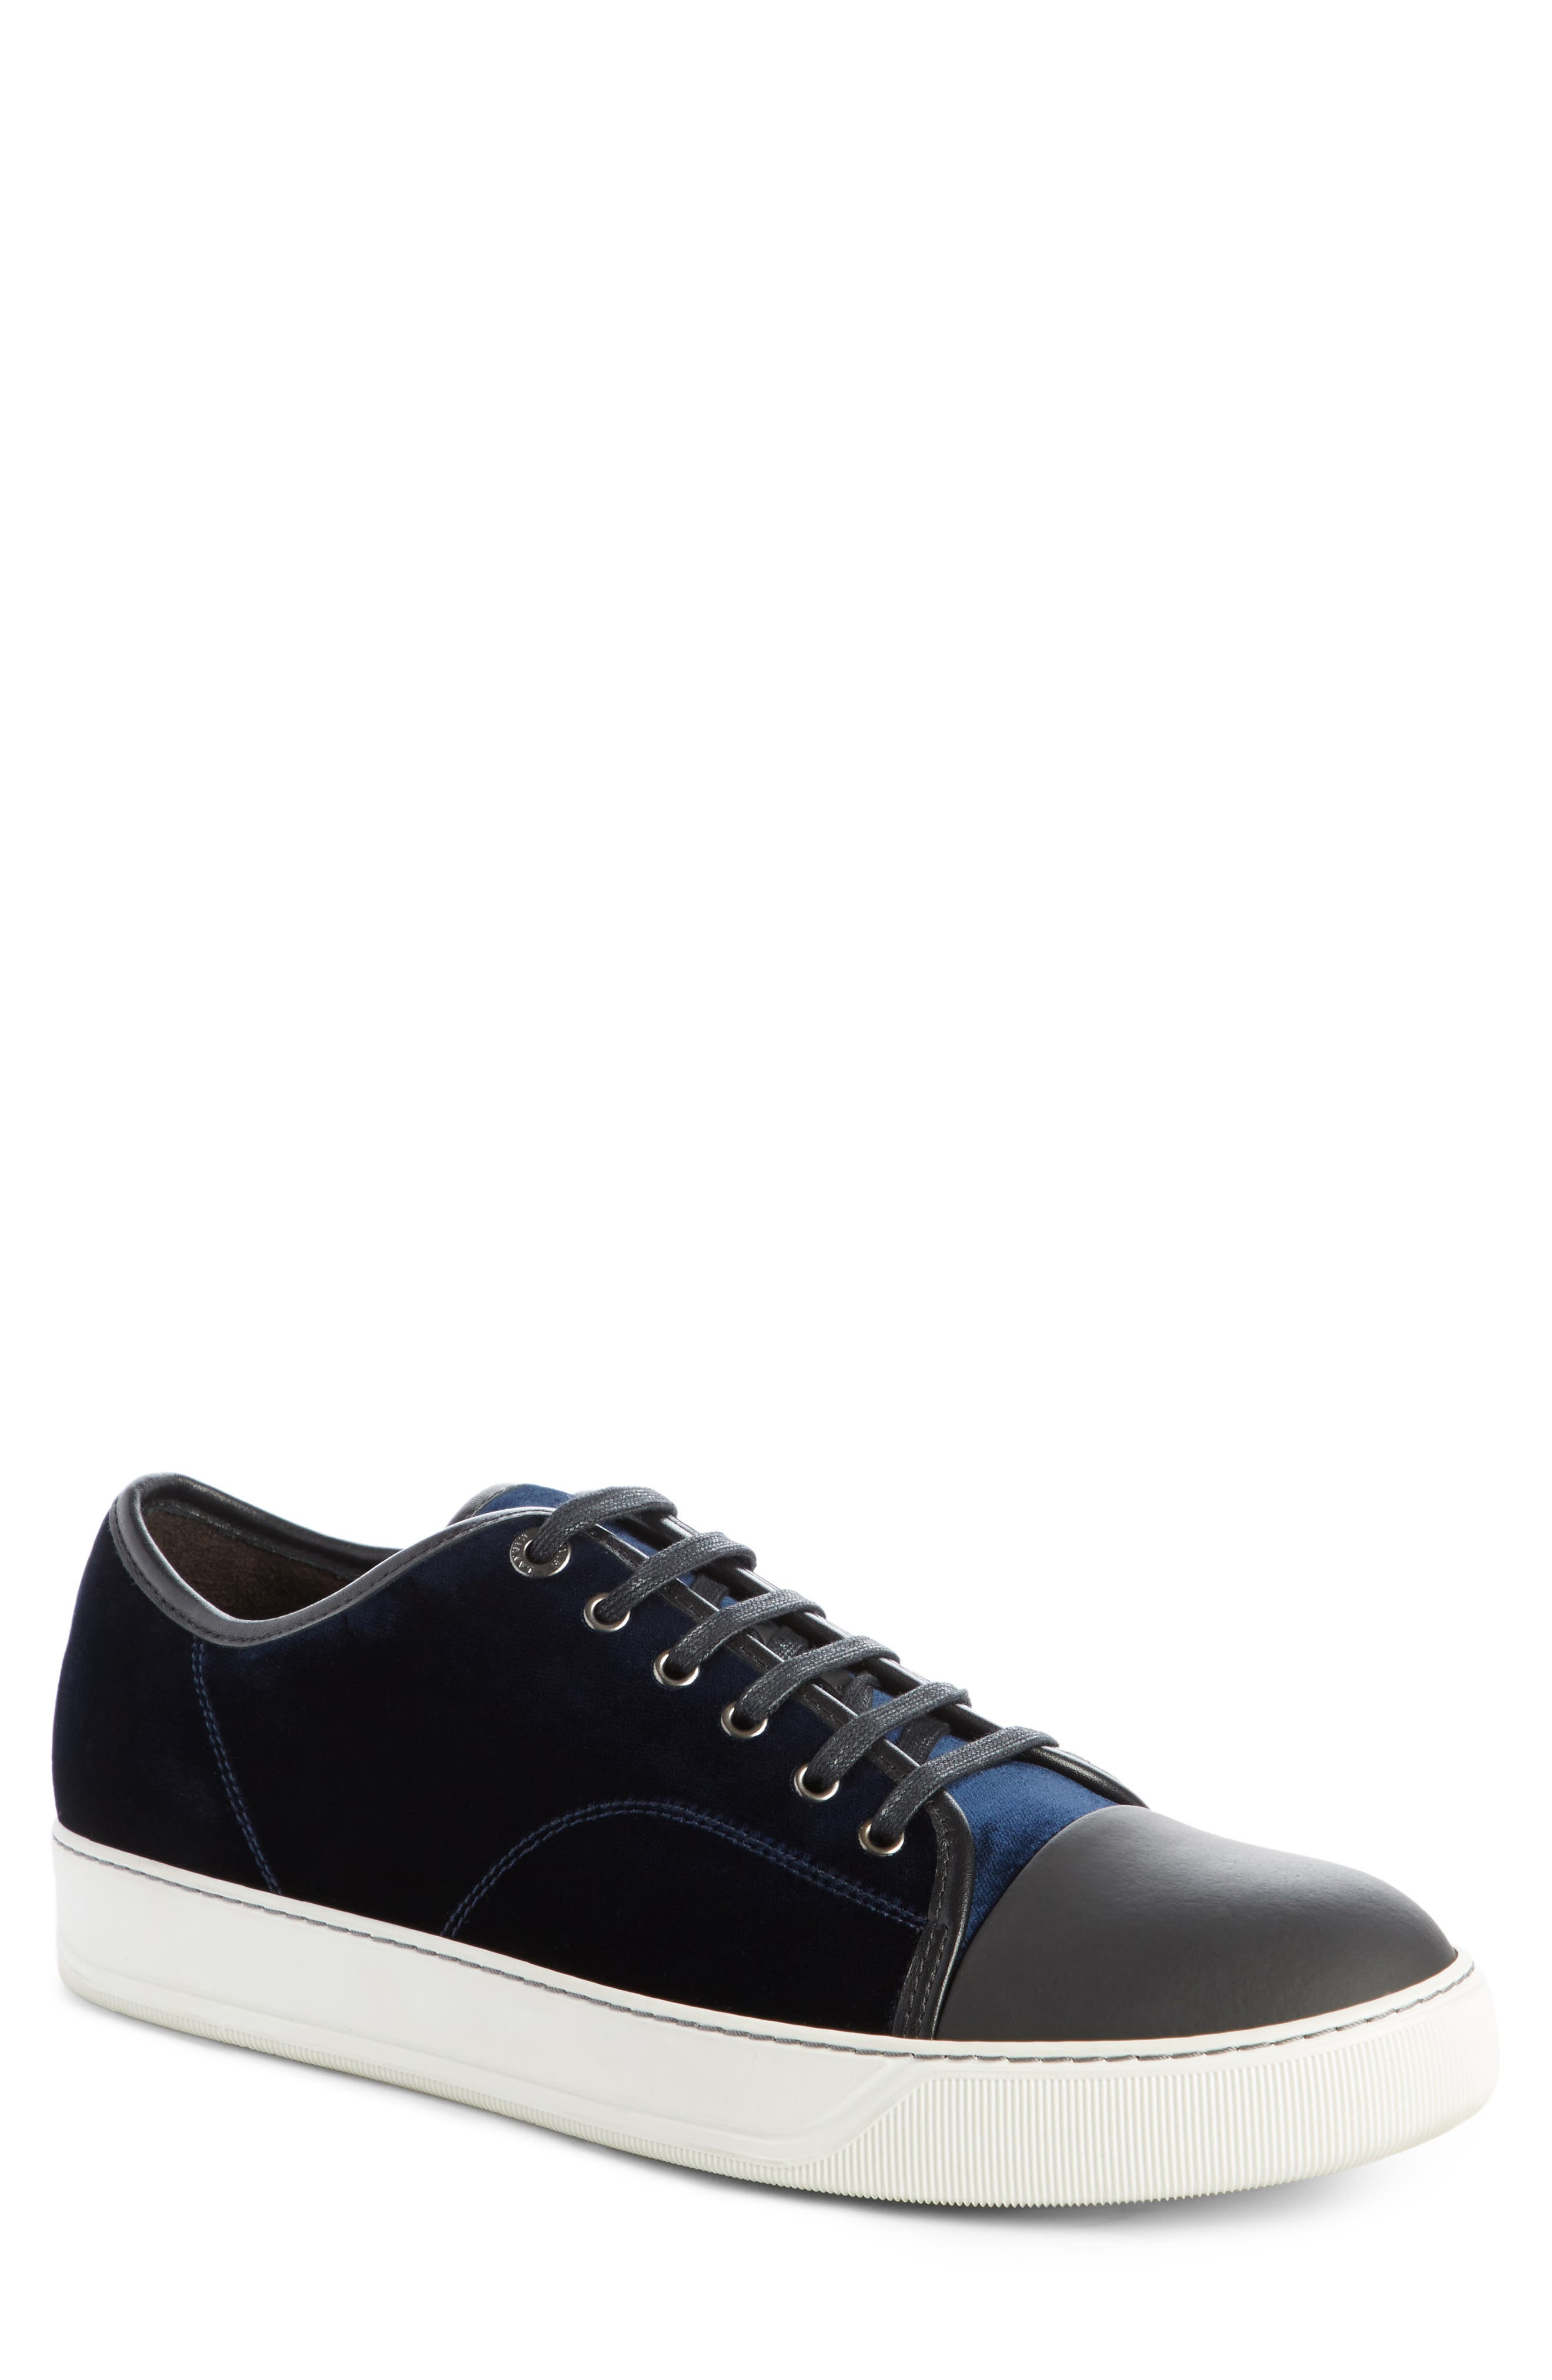 Main Image - Lanvin Low Top Sneaker (Men)